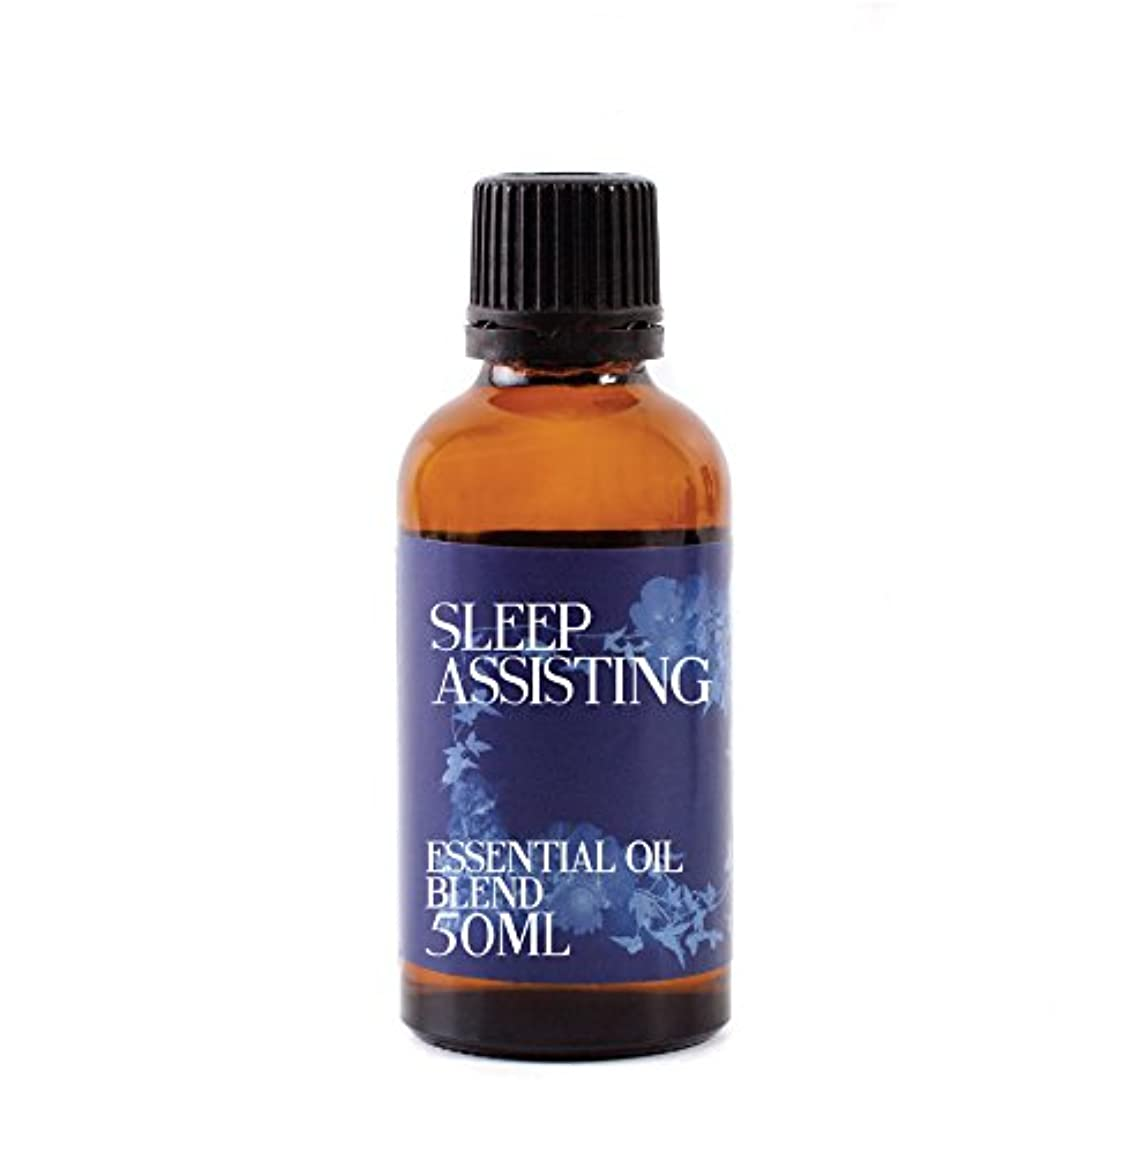 忌まわしい表面的なスキームMystix London | Sleep Assisting Essential Oil Blend - 50ml - 100% Pure